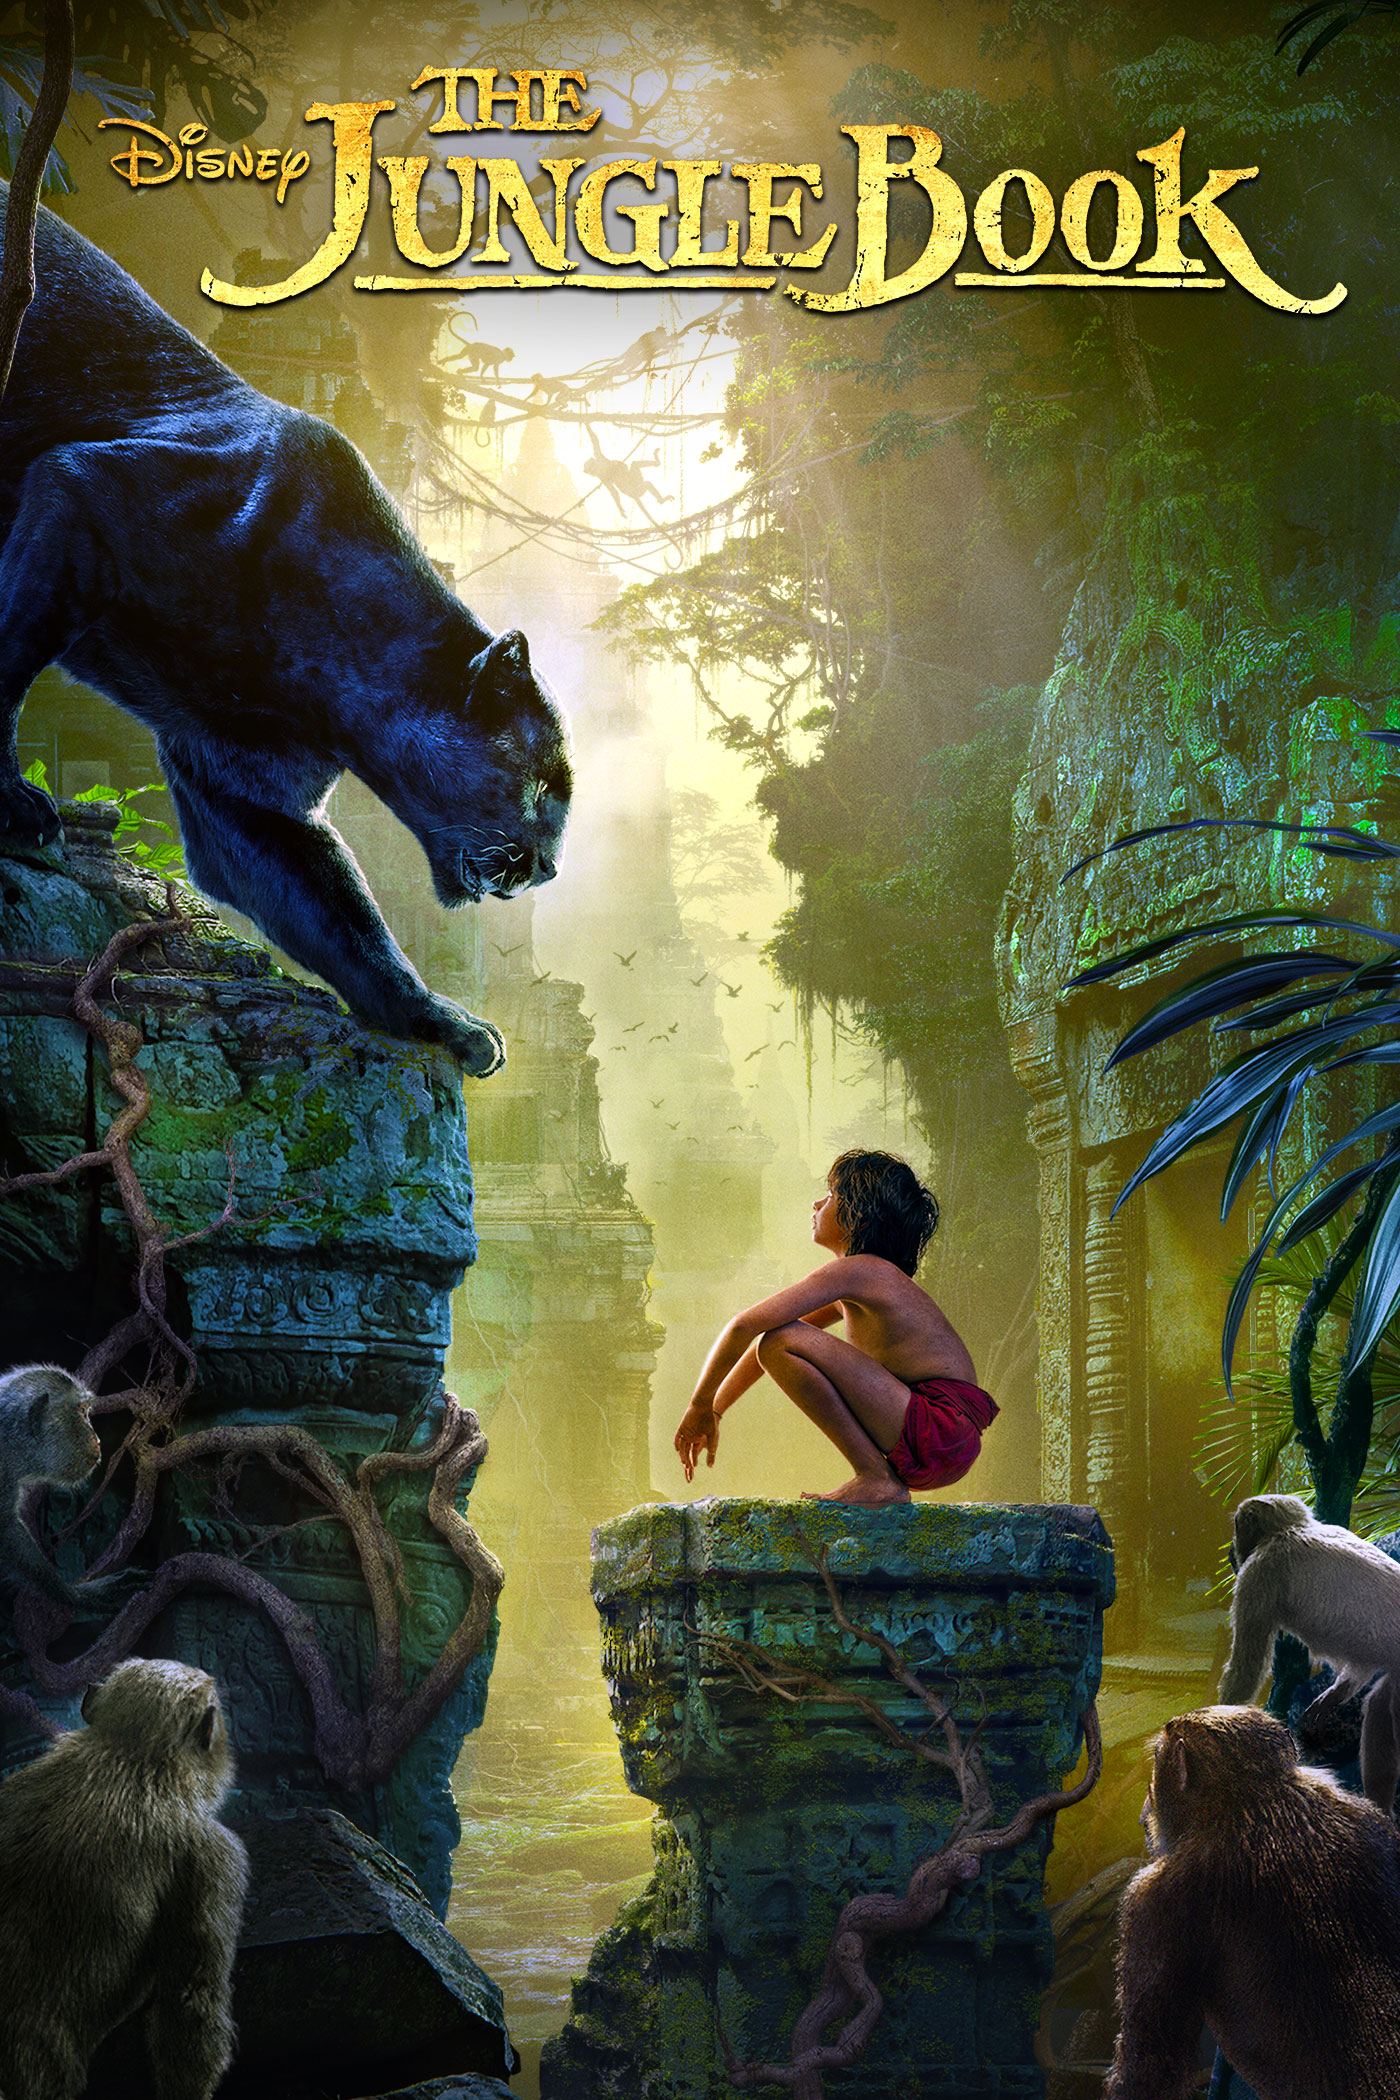 The Jungle Book (2016) Bangla Dubbed 720p HDRip Download *Free*